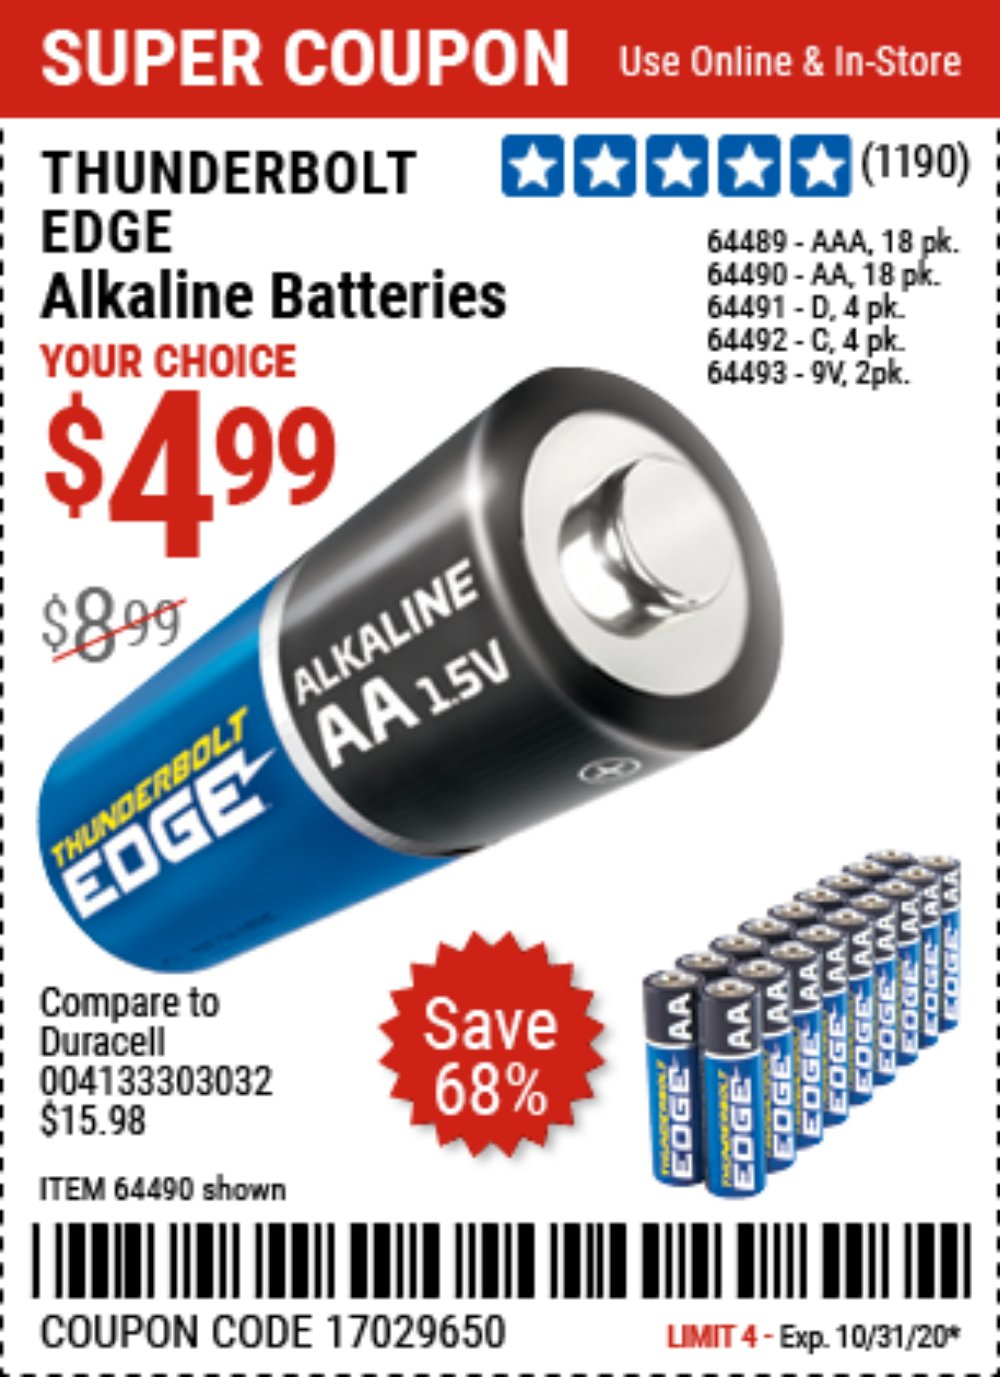 Harbor Freight Coupon, HF Coupons - THUNDERBOLT EDGE Alkaline Batteries for $4.99